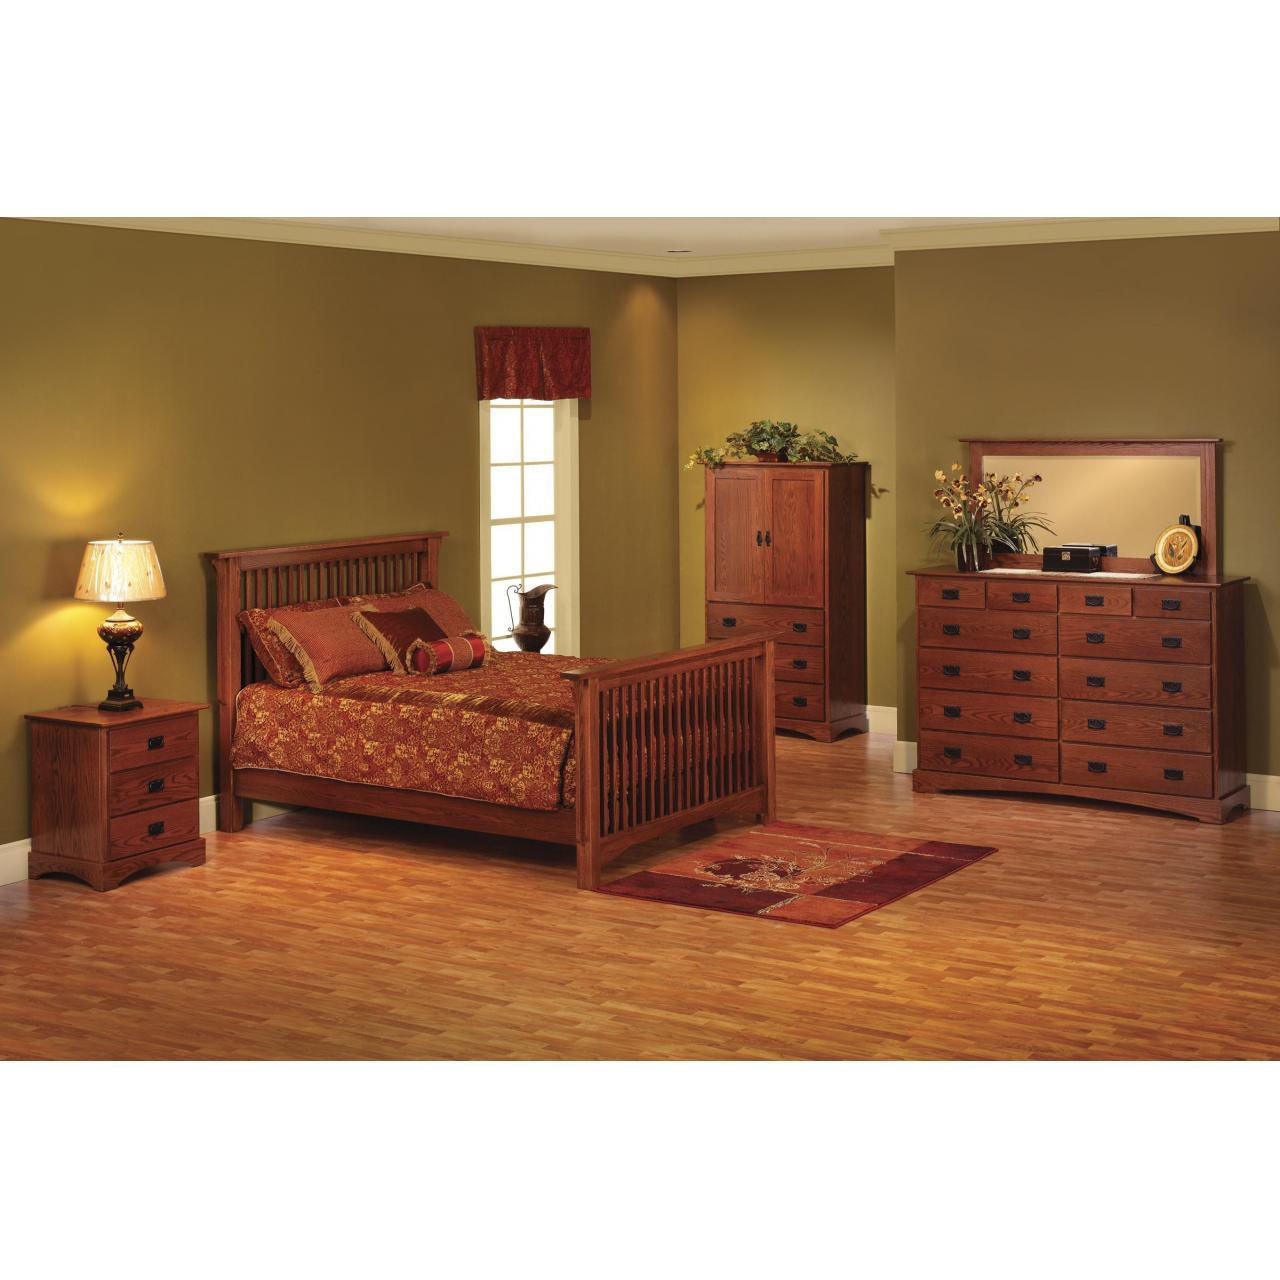 Quality Craftsman Bedroom Furniture wholesale